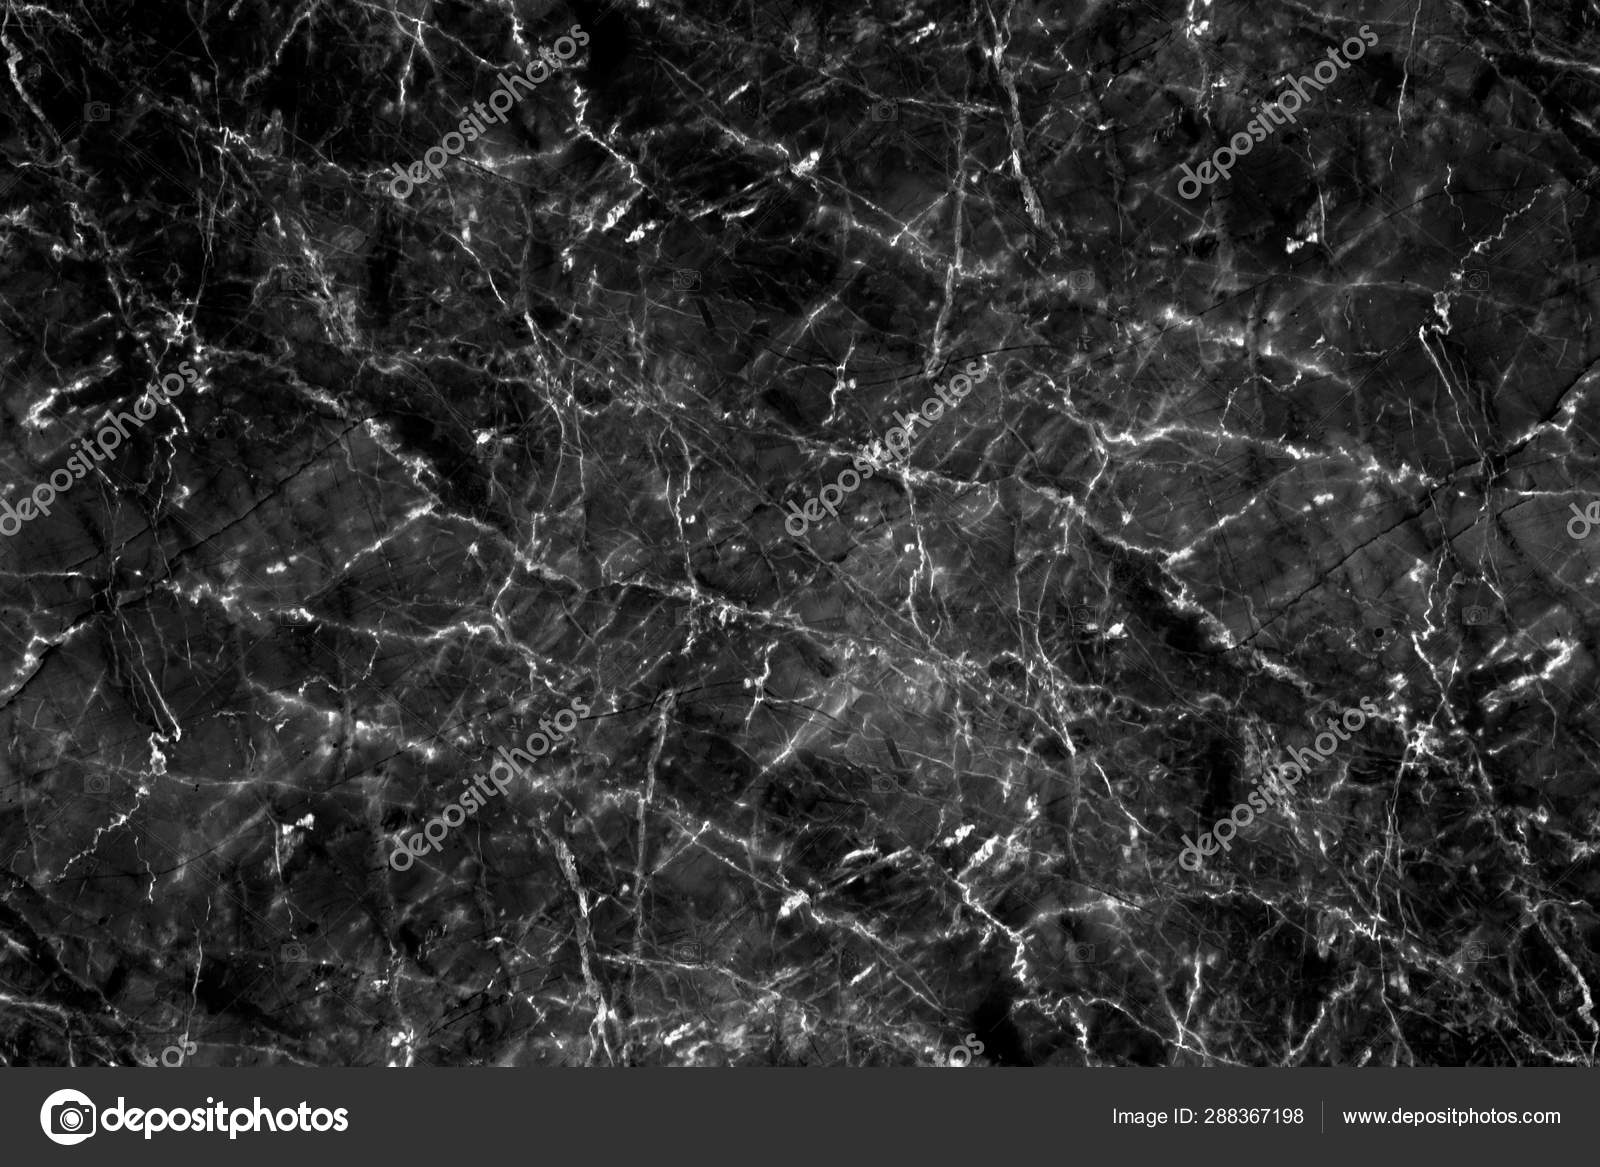 Black Marble Background Texture Natural Stone Pattern Abstract For Design Art Work Marble With High Resolution Stock Photo C Noomubon 288367198